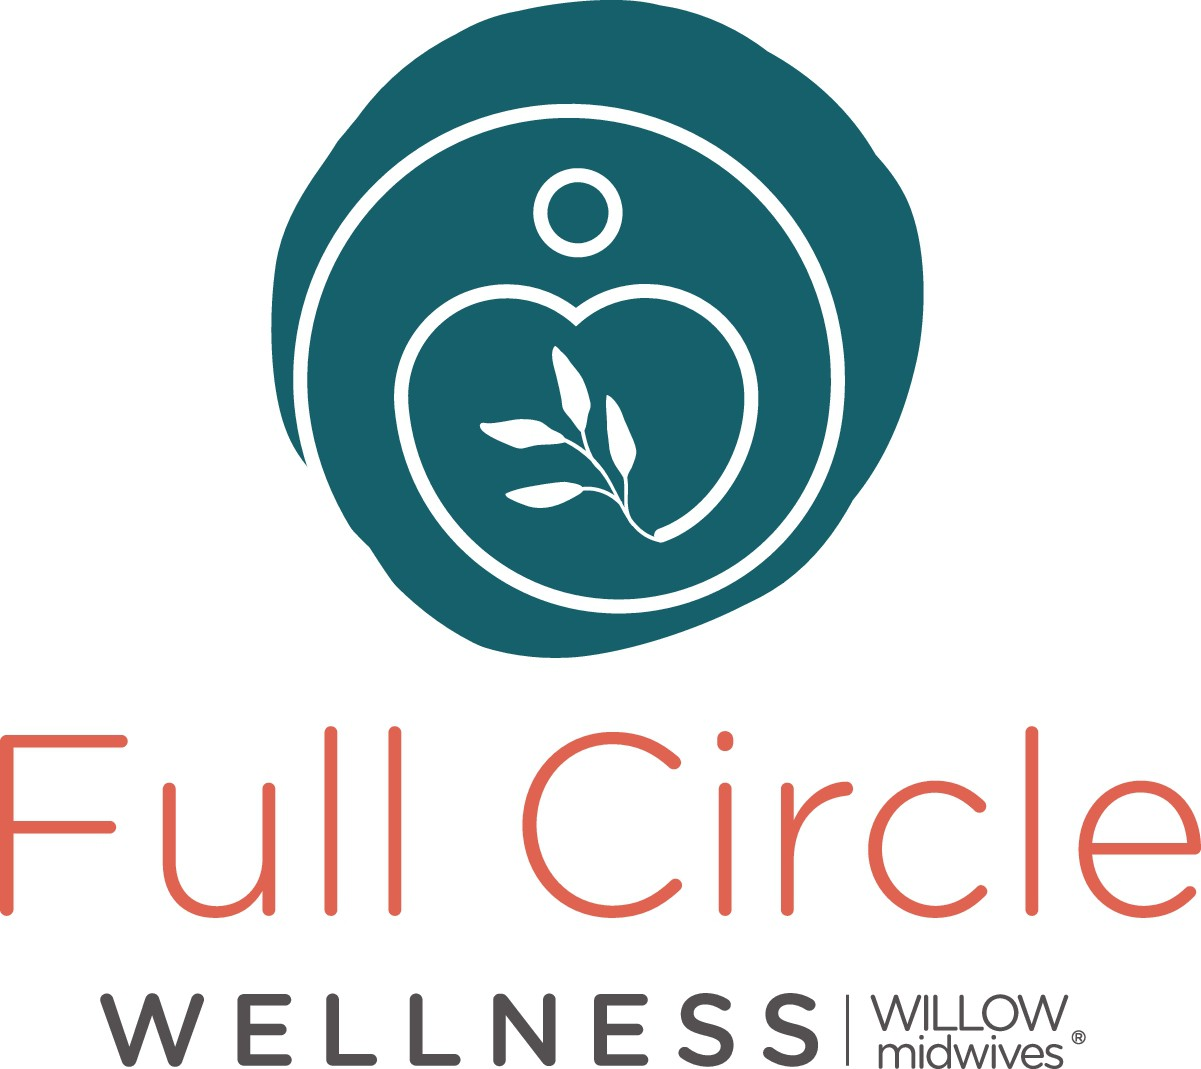 Willow Midwives and Full Circle Wellness